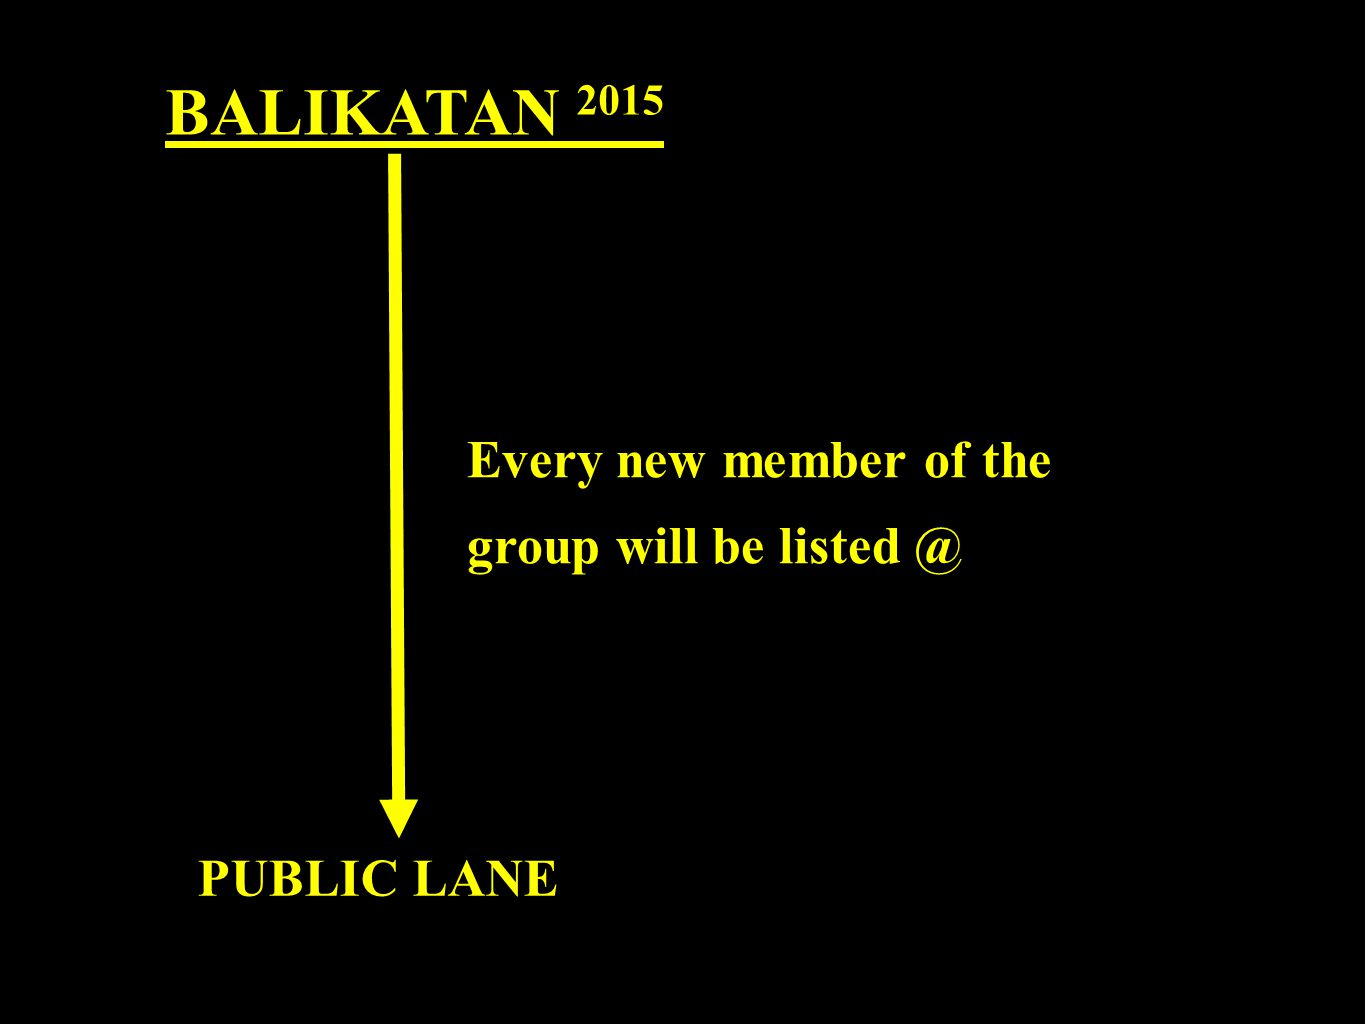 BALIKATAN 2015 Every new member of the group will be listed @ PUBLIC LANE